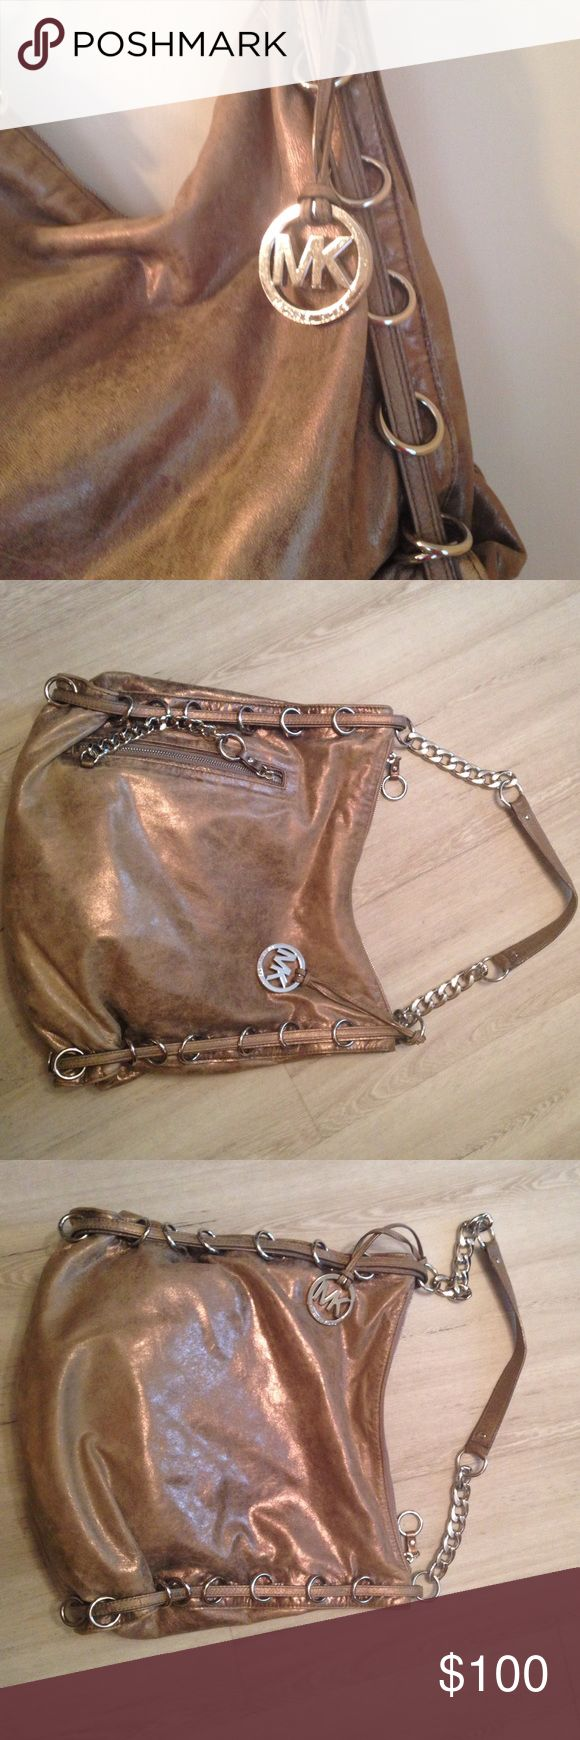 Michael Kors metallic bag Michael Kors metallic bag with silver chain- link handle, excellent condition Michael Kors Bags Shoulder Bags